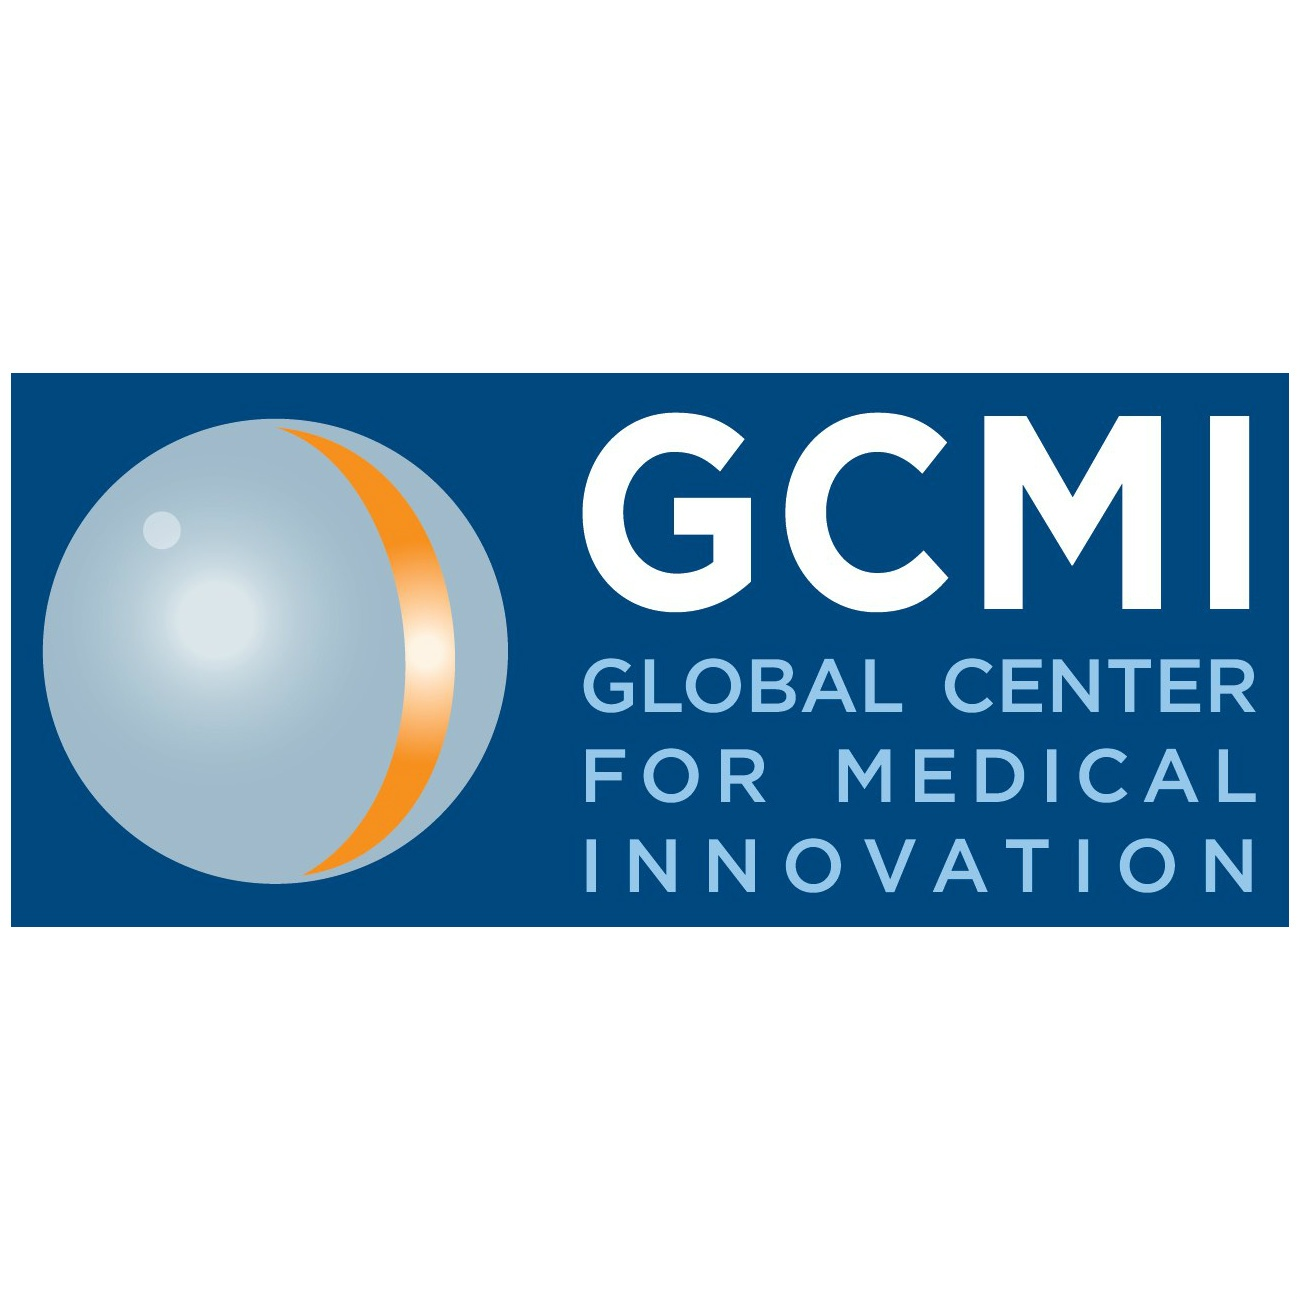 GCMI (Global Center for Medical Innovation)